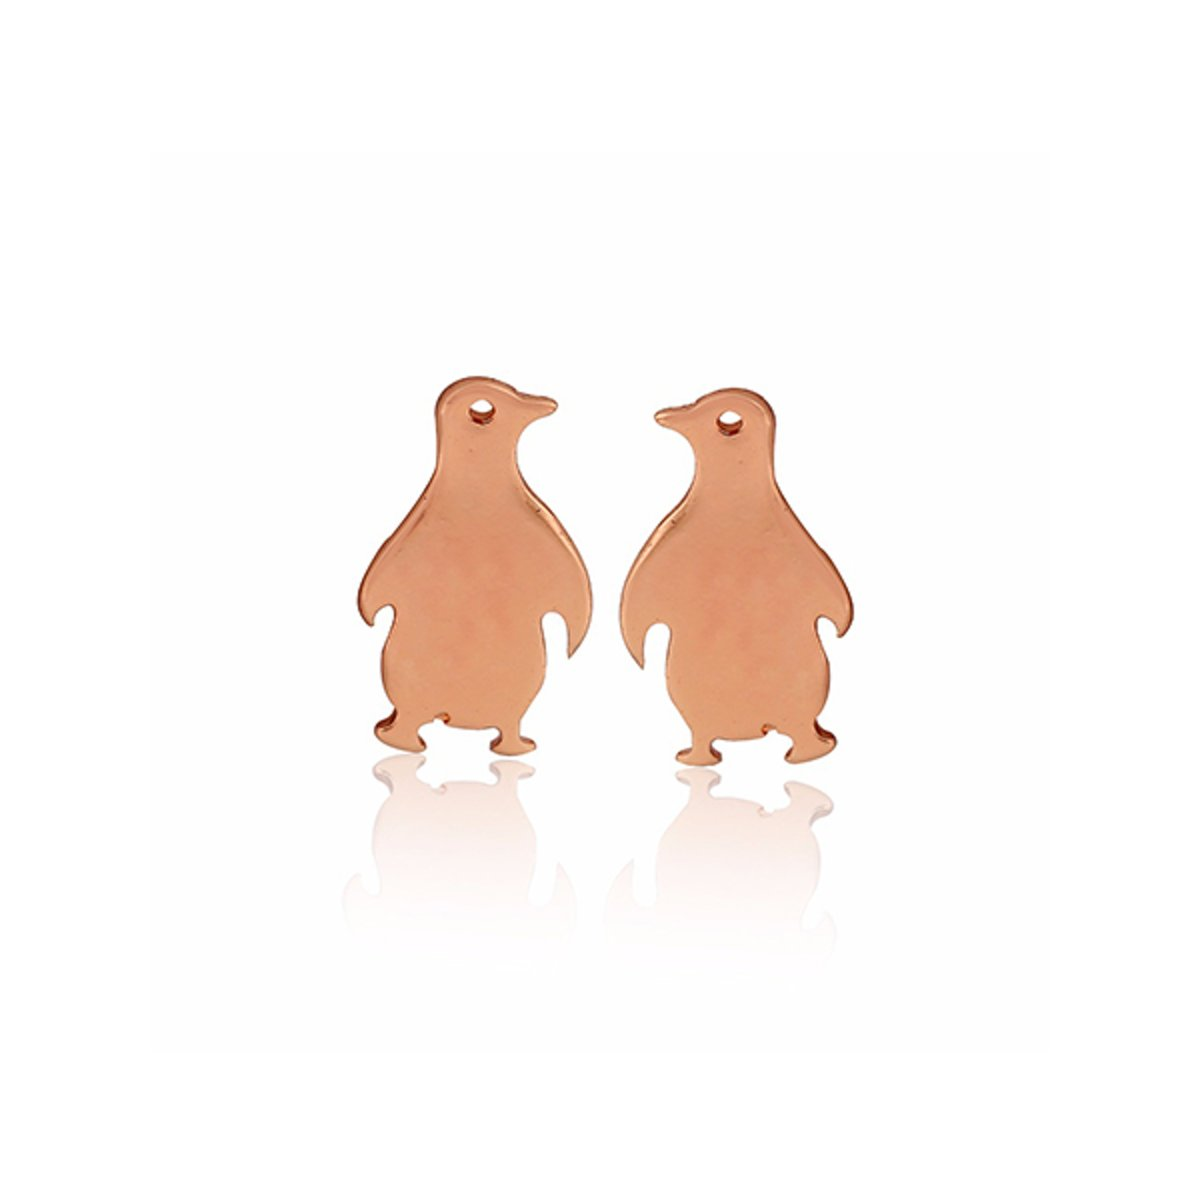 24/7 Jewelry Collection Pinguin Oorbellen - Pinguïns - Róse Goudkleurig kopen